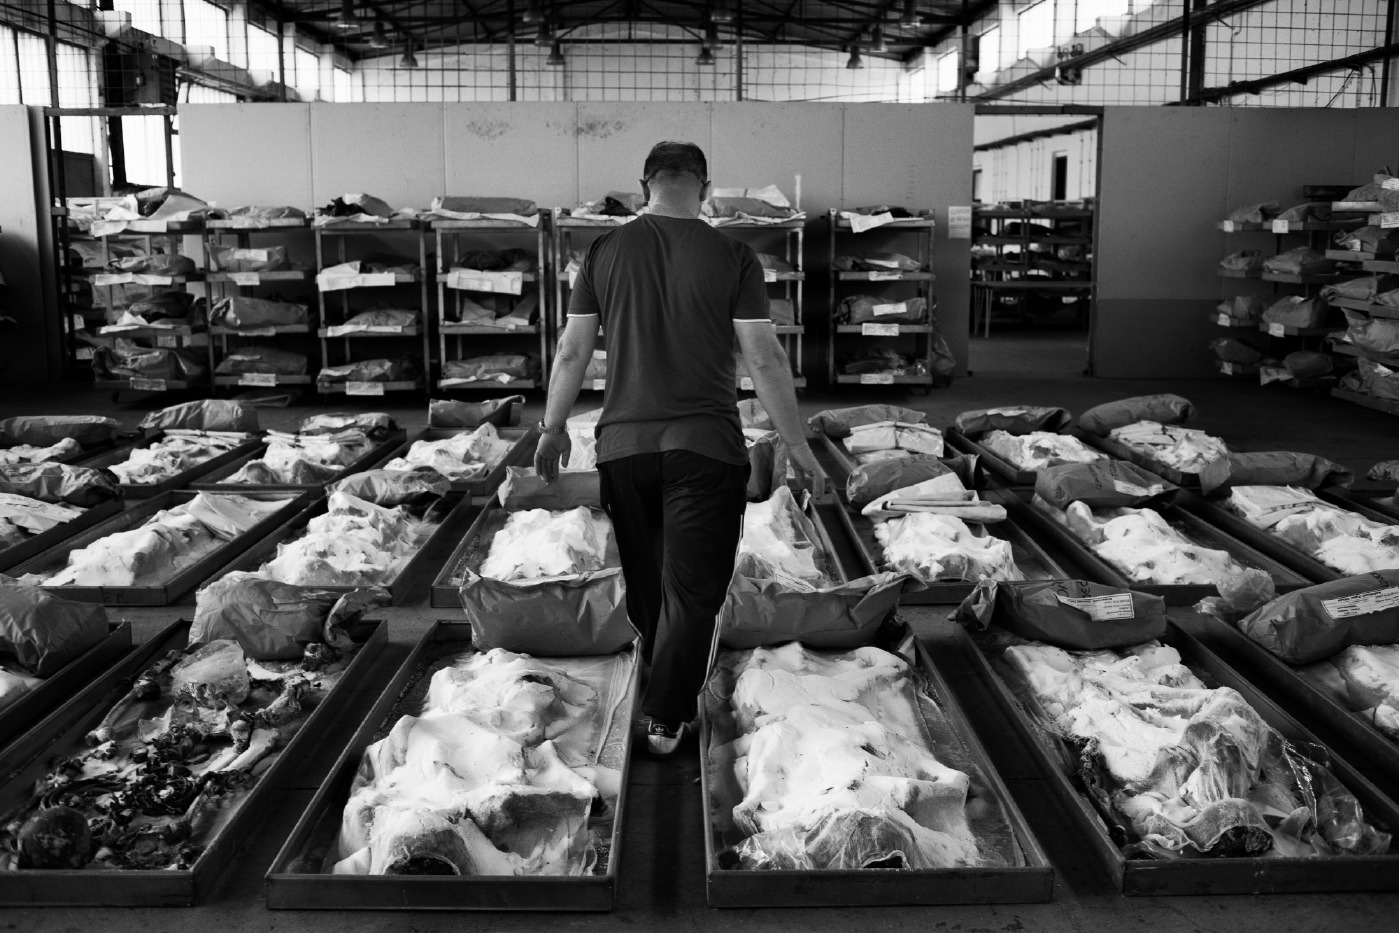 A member of Krajina Identification Project walks between the corpses inside the morgue. The 435 victims were found in Tomasica, one of the largest mass graves ever discovered in Bosnia. It turned out that 270 of the skeletons were incomplete of limbs or skulls. The bodies are not very decomposed, due to the clay composition in the soil in which they were hidden and buried by Bosnian Serbs more then 20 years ago. Sanski Most, Bosnia and Herzegovina, 2014. © Matteo Bastianelli